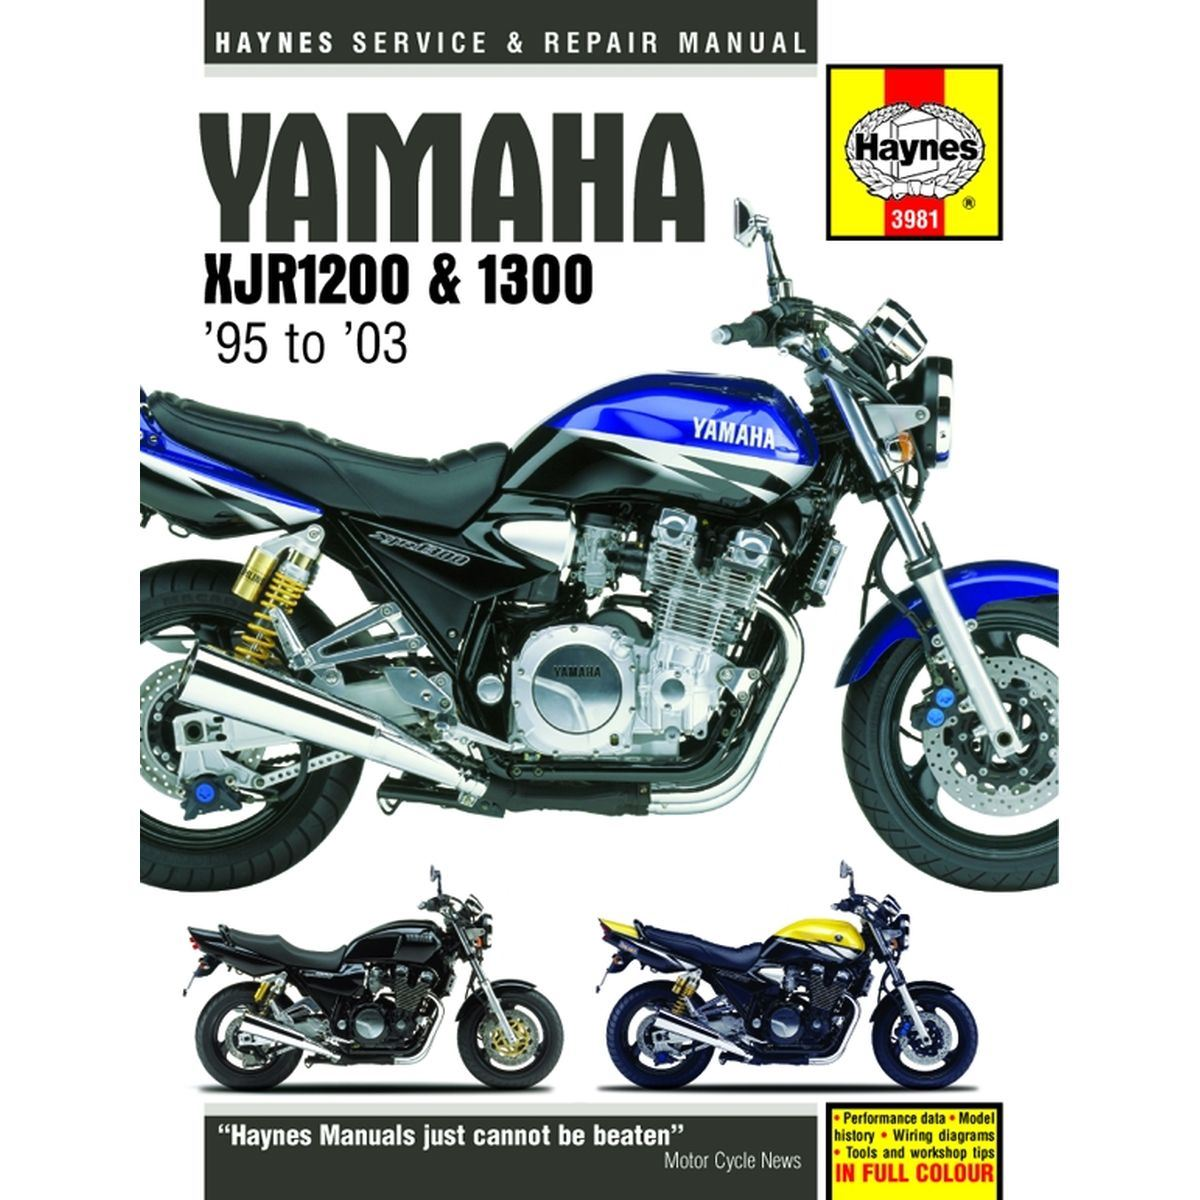 hight resolution of picture of haynes manual 3981 yam xjr1200 1300